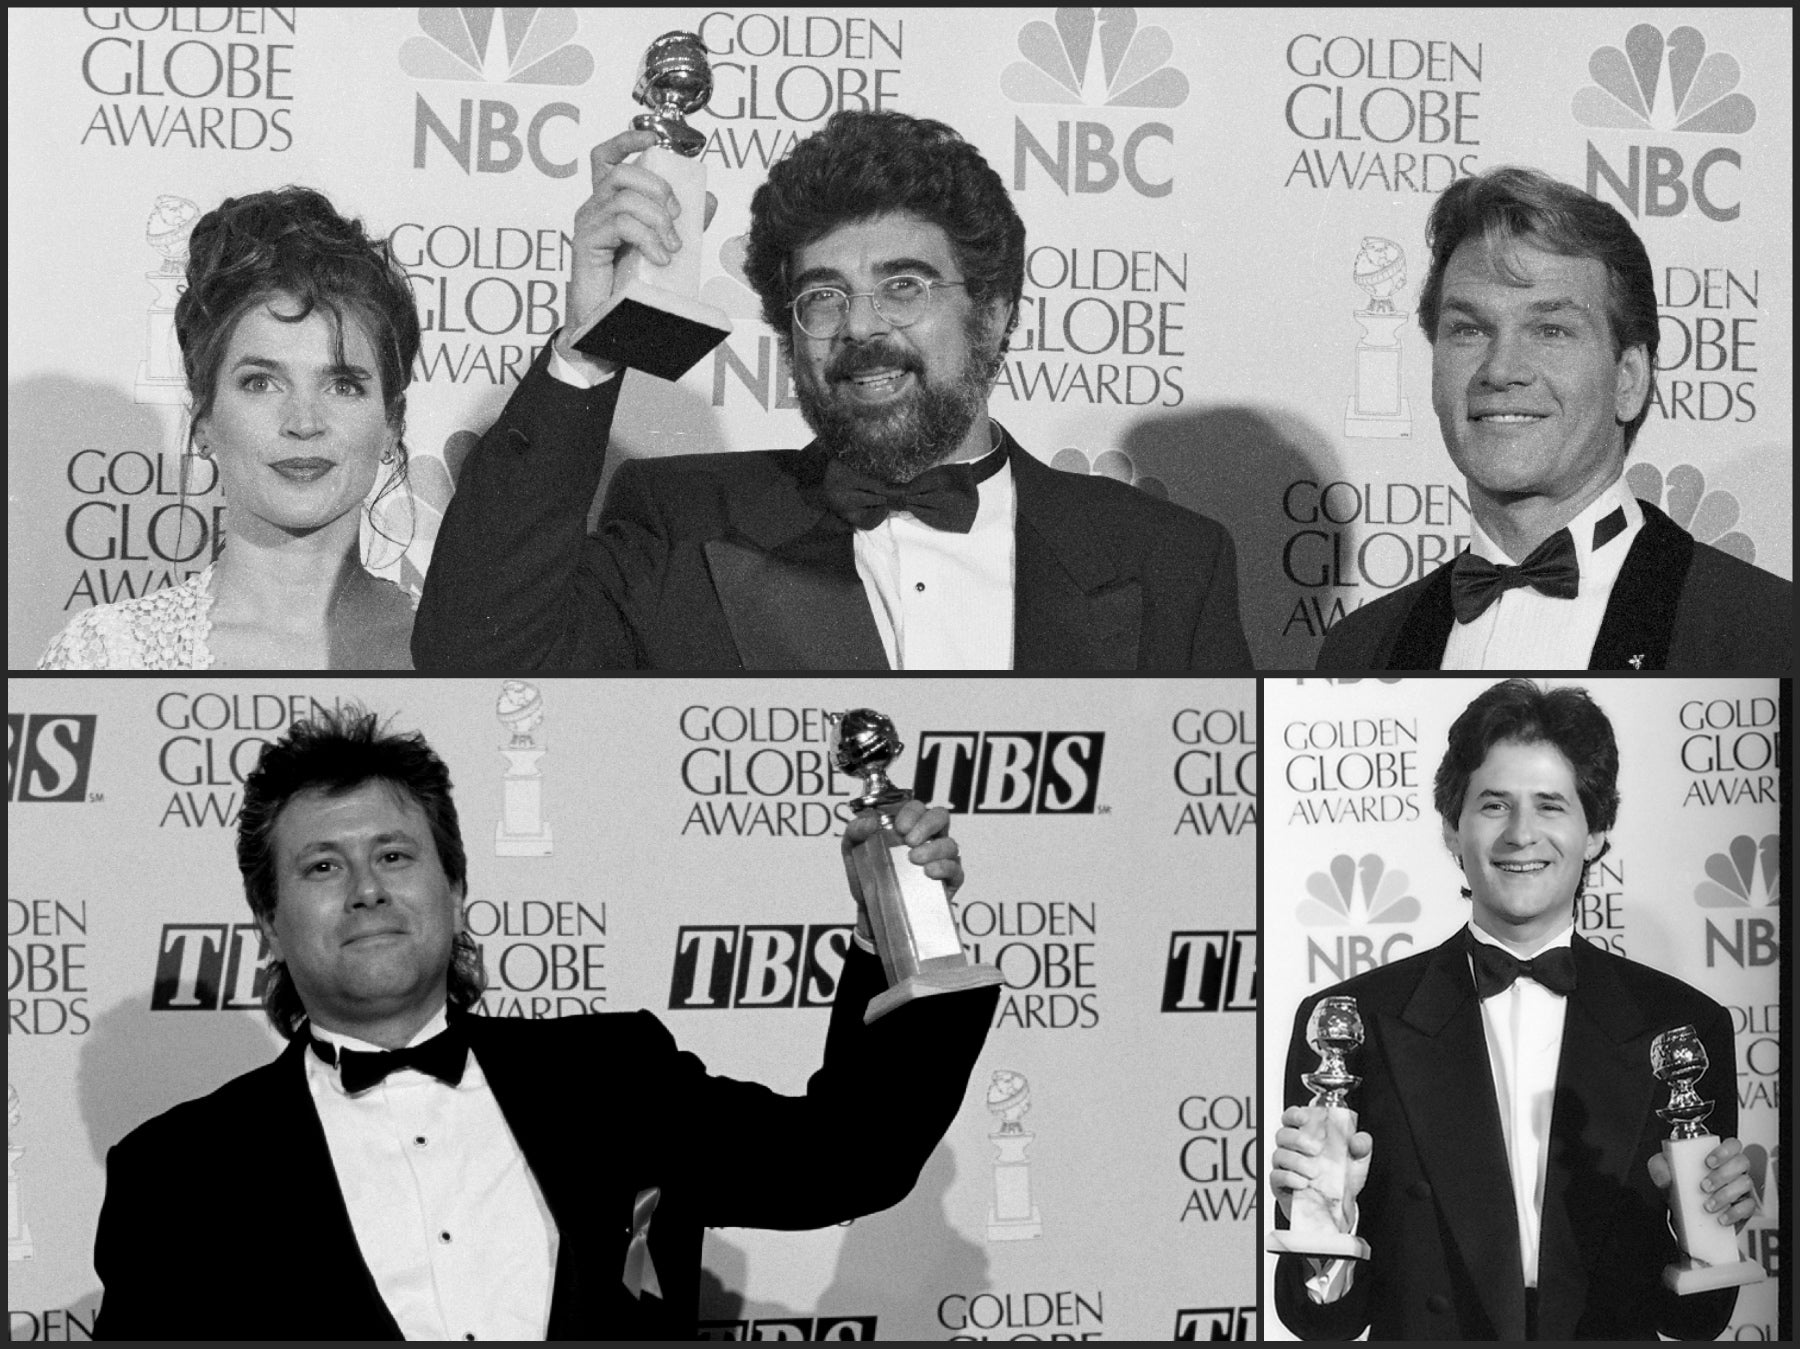 Gabriel Yared, Alan Menken and James Horner, Golden Globe winners